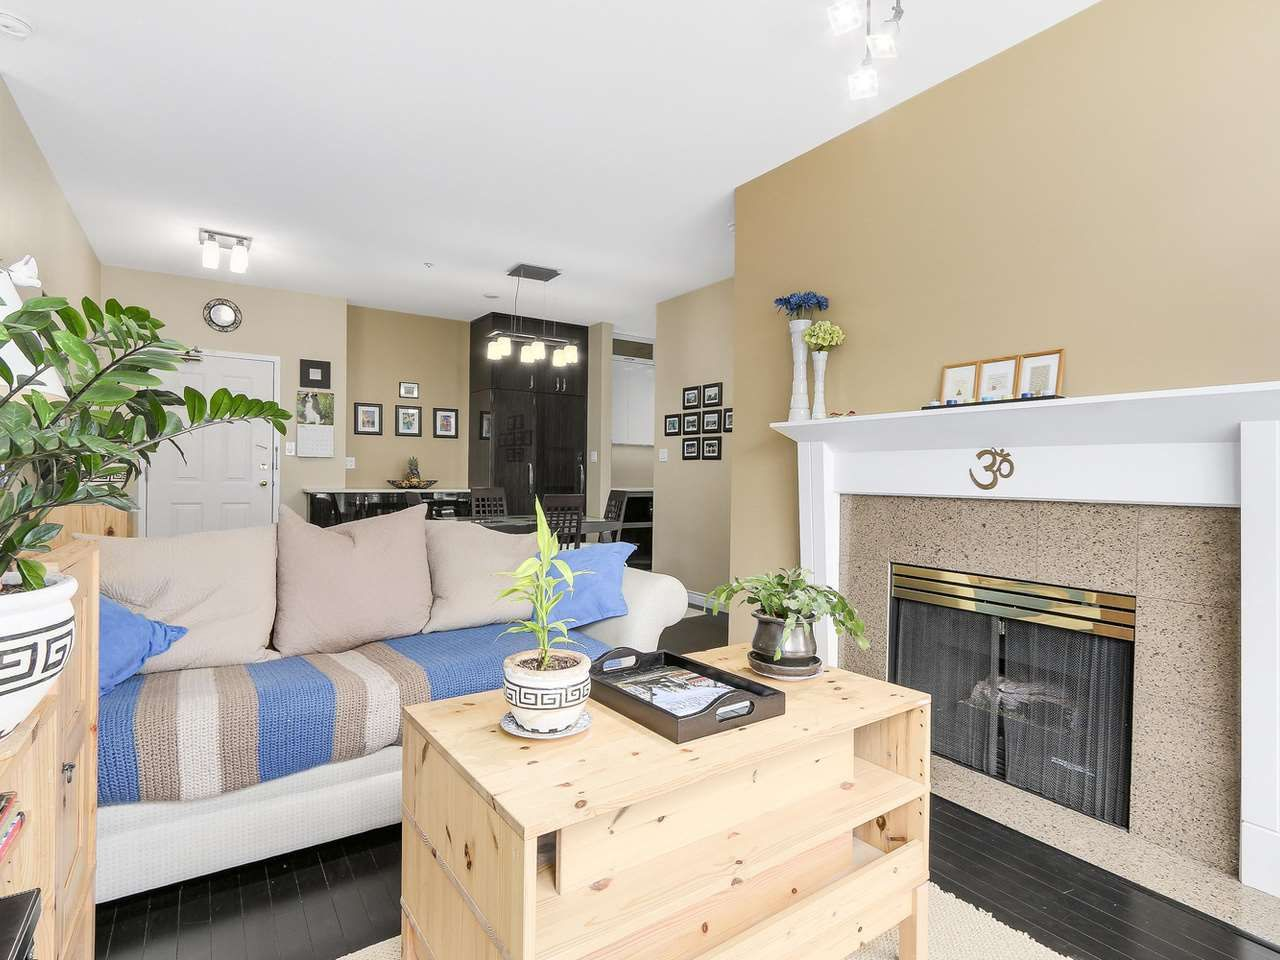 """Main Photo: PH10 511 W 7TH Avenue in Vancouver: Fairview VW Condo for sale in """"BEVERLY GARDENS"""" (Vancouver West)  : MLS®# R2156639"""